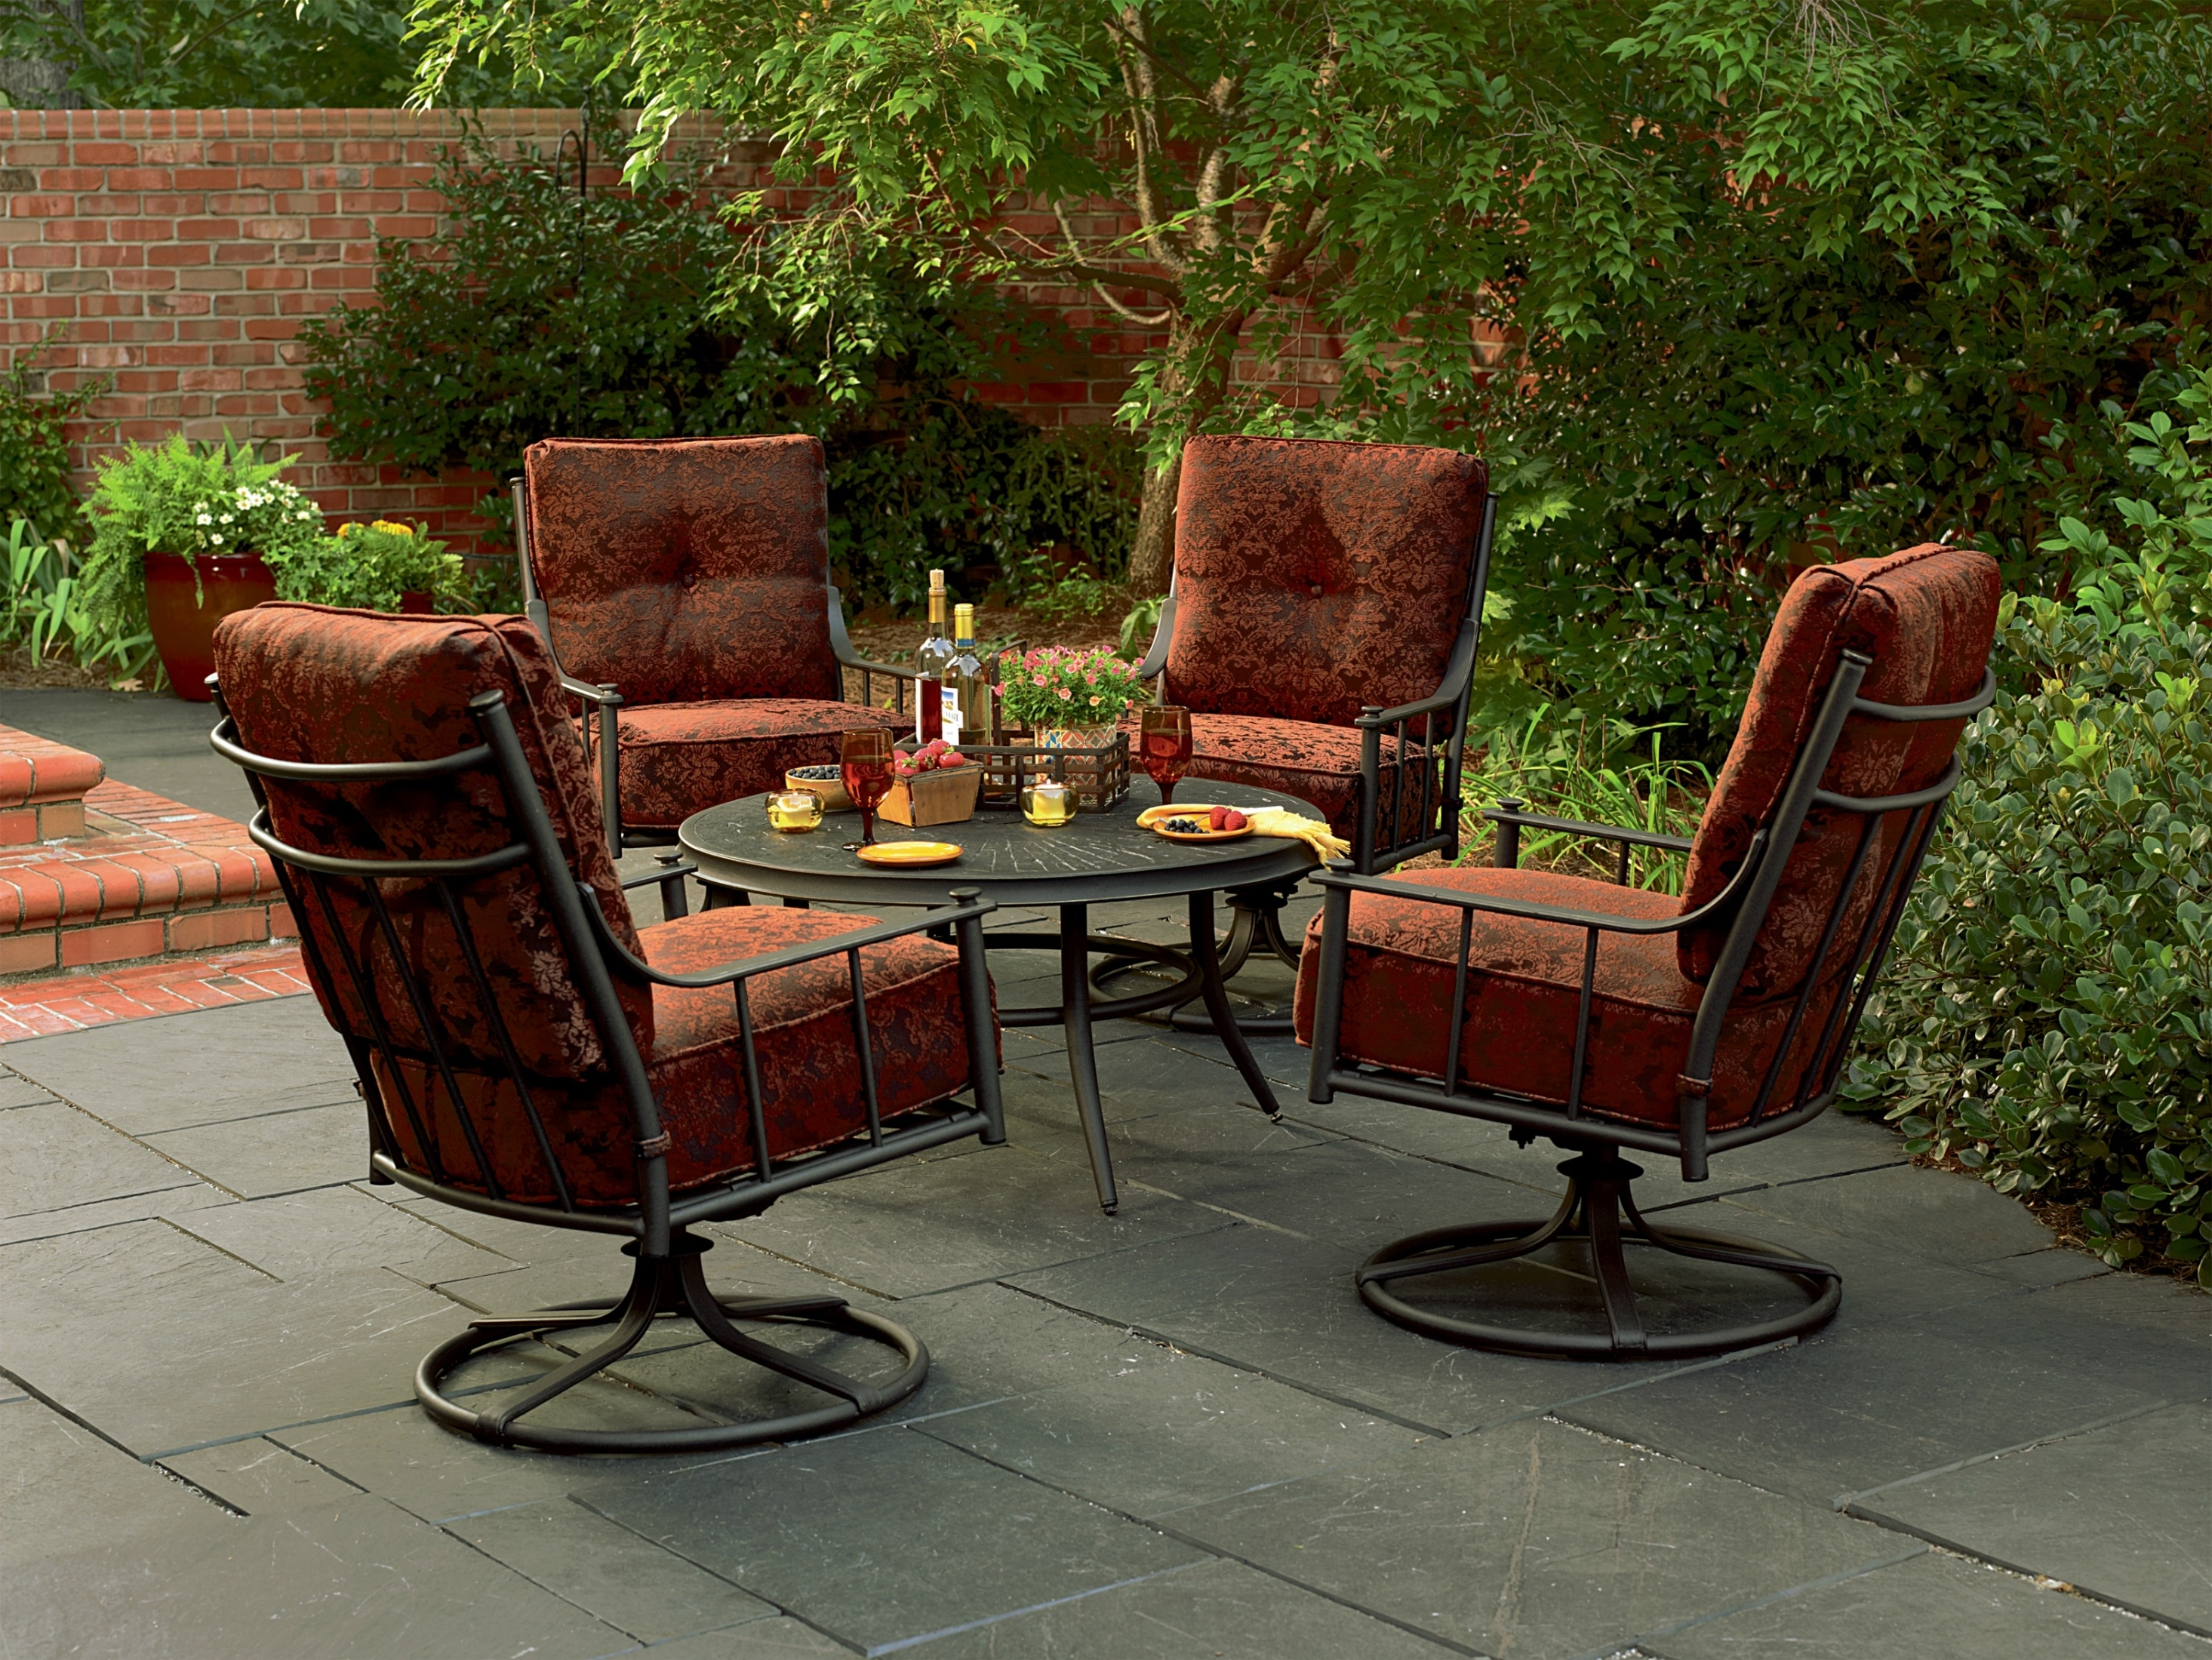 Patio Table: Sears Fire Pit Awesome Patio Ideas Patio Furniture Sets With Regard To Most Up To Date Sears Patio Furniture Conversation Sets (View 9 of 20)